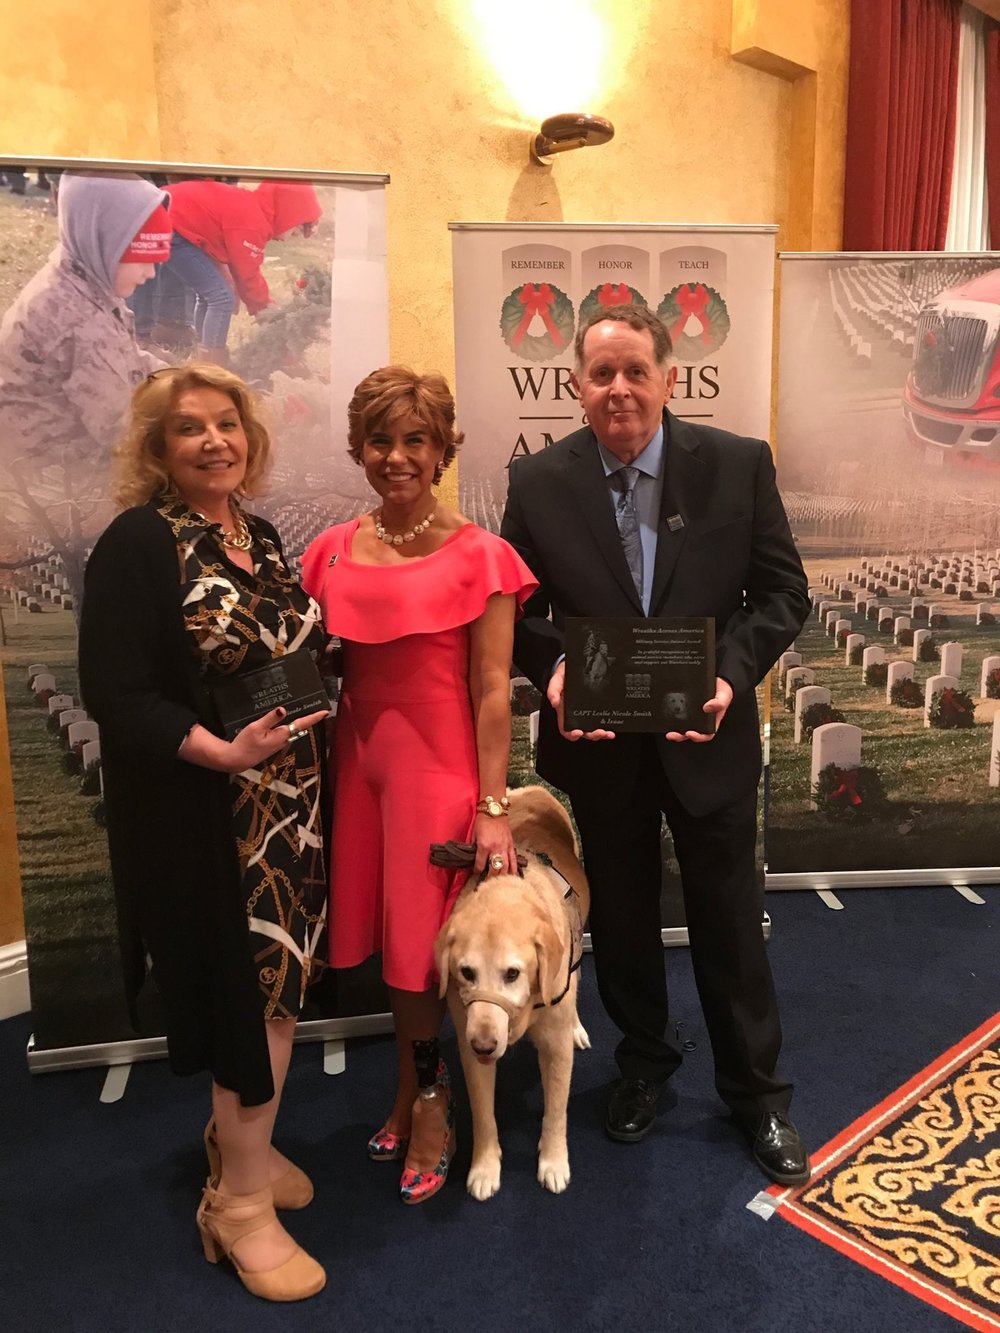 Captain Leslie Smith and her service dog Issac pictured here with Karen and Morrill Worcester during WAA-UMA awards and recognition ceremony.